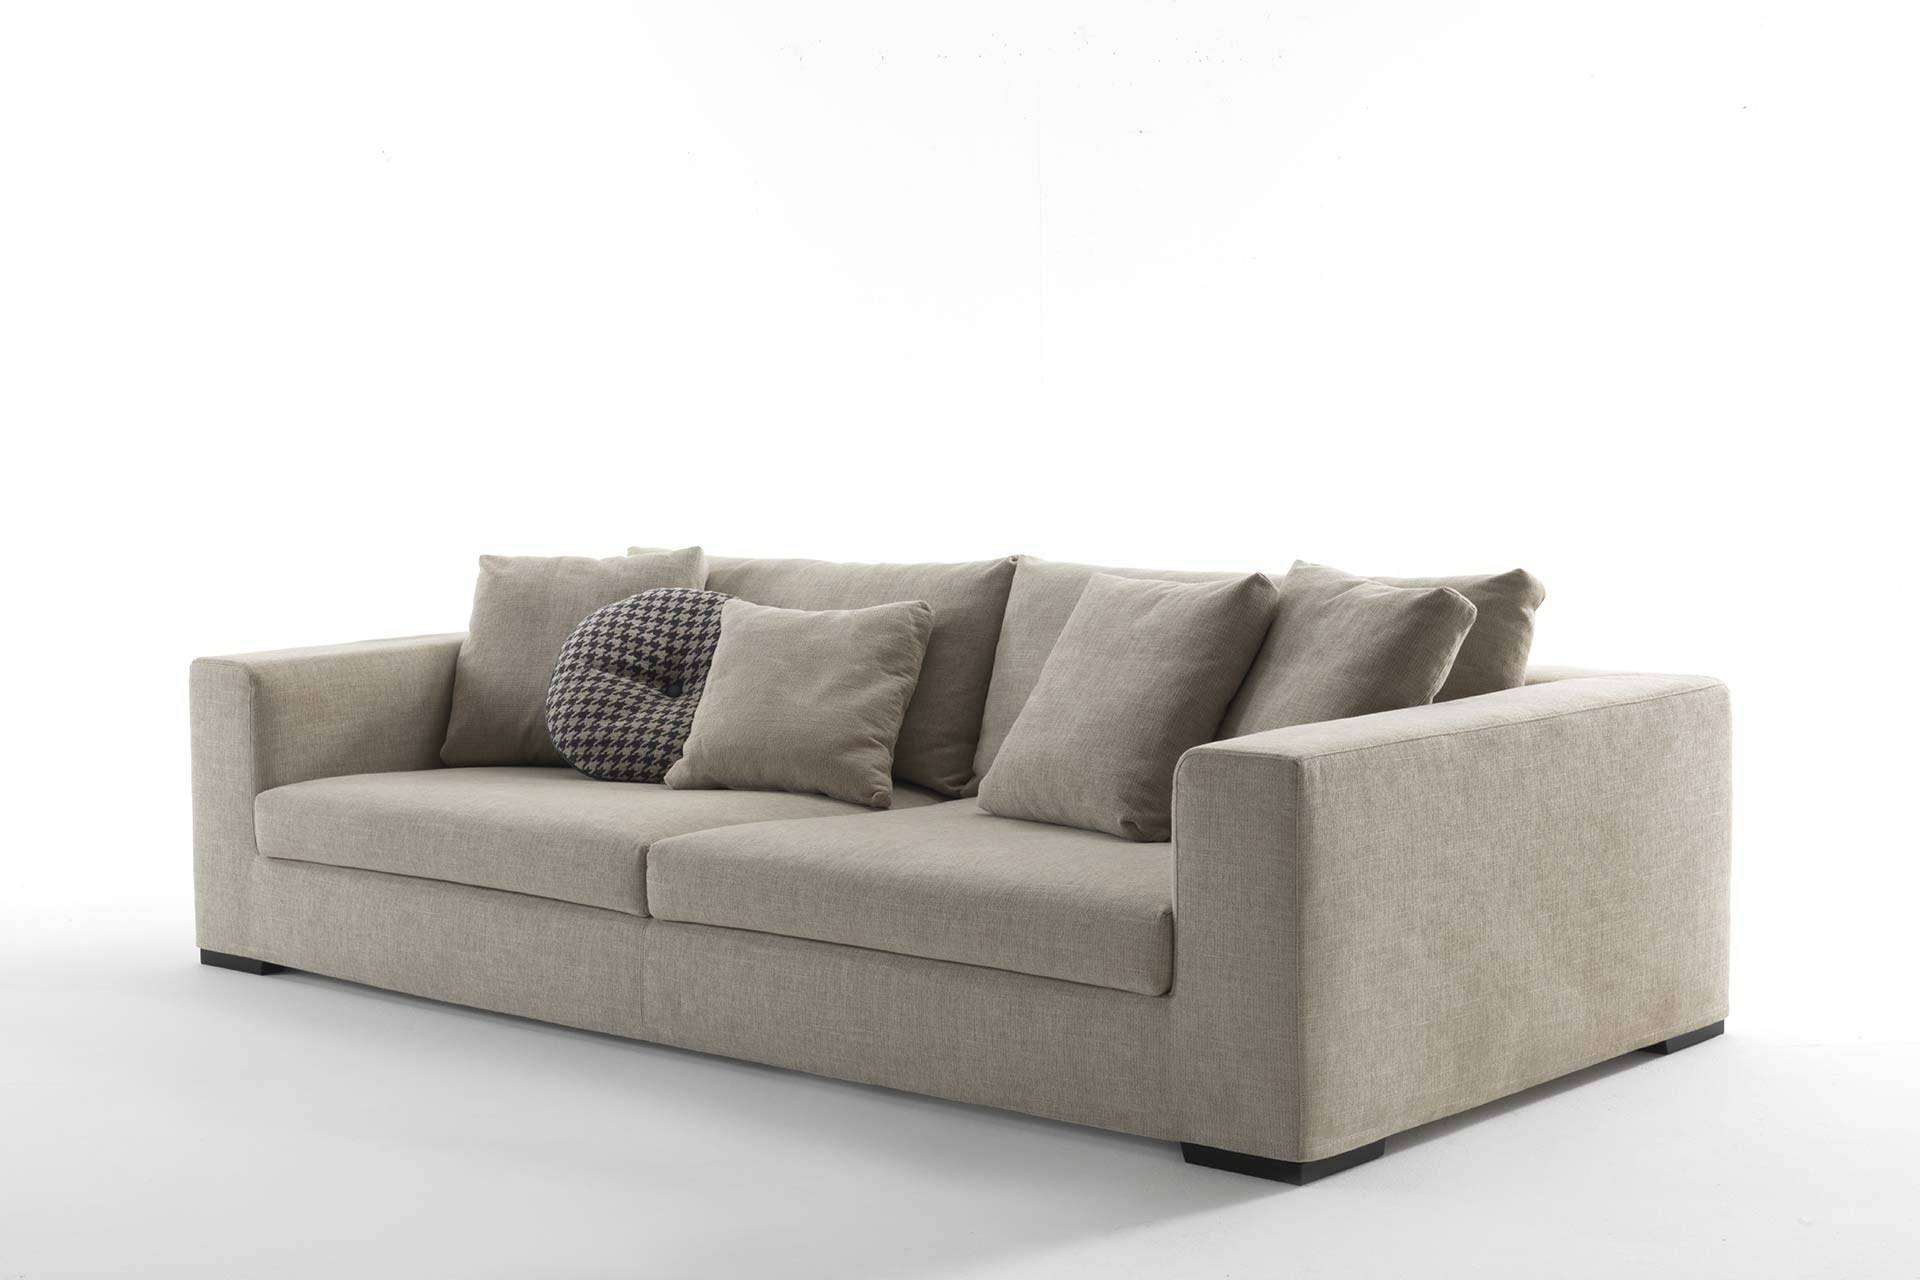 Oreste | 4 Seater Sofafrigerio Salotti for 4 Seater Couch (Image 30 of 30)